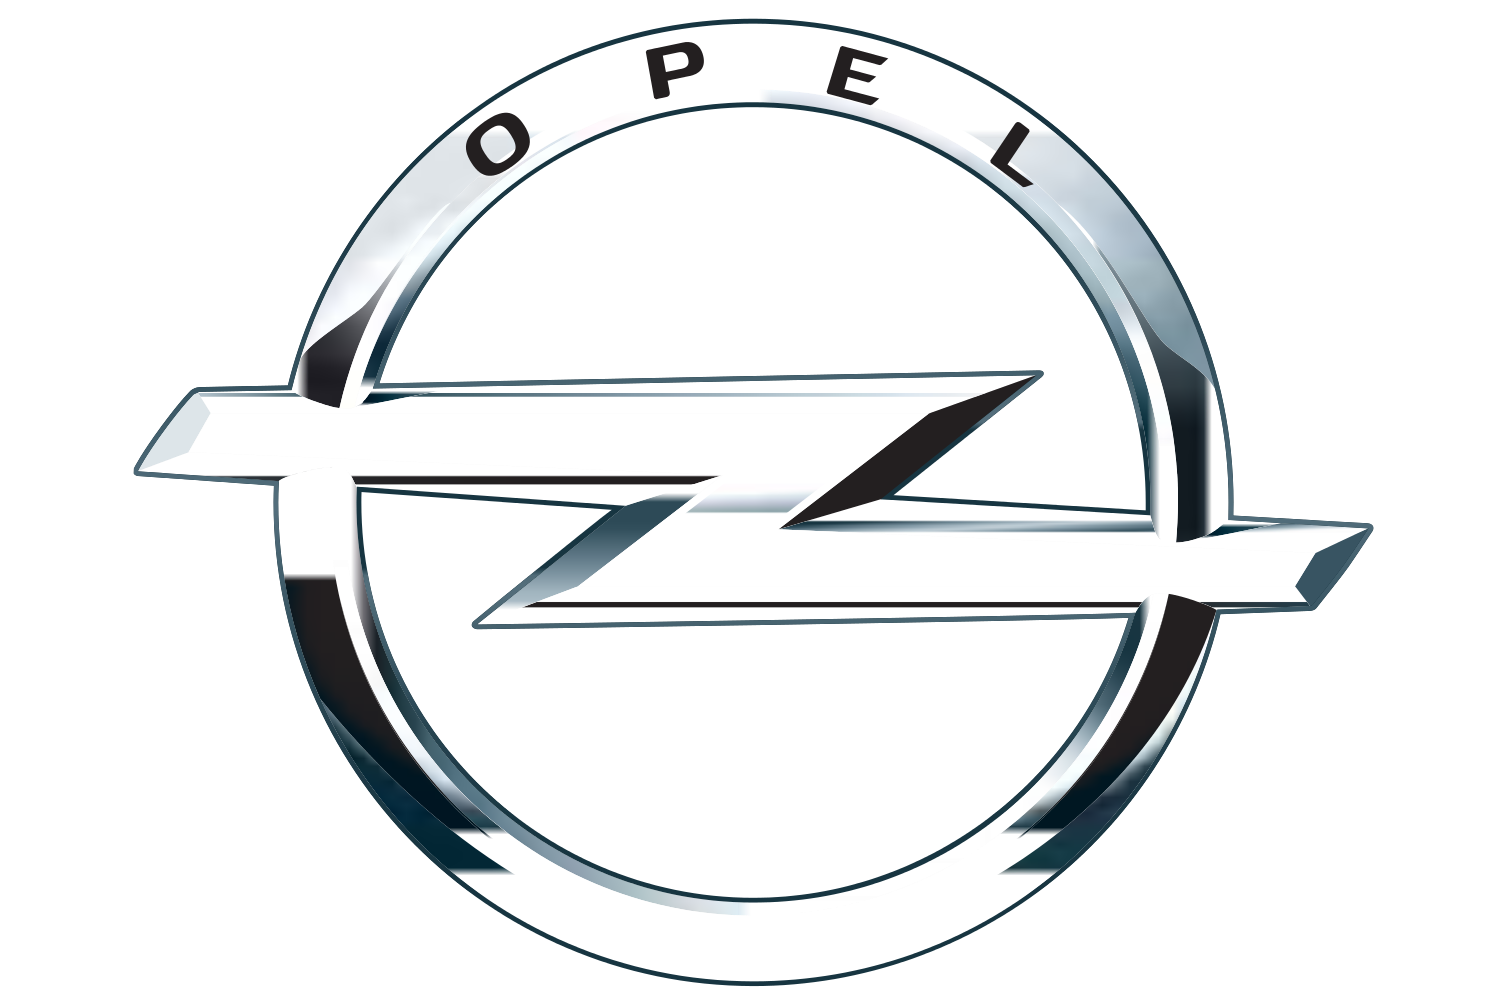 Opel Logo Opel Car Symbol And History Car Brand Names